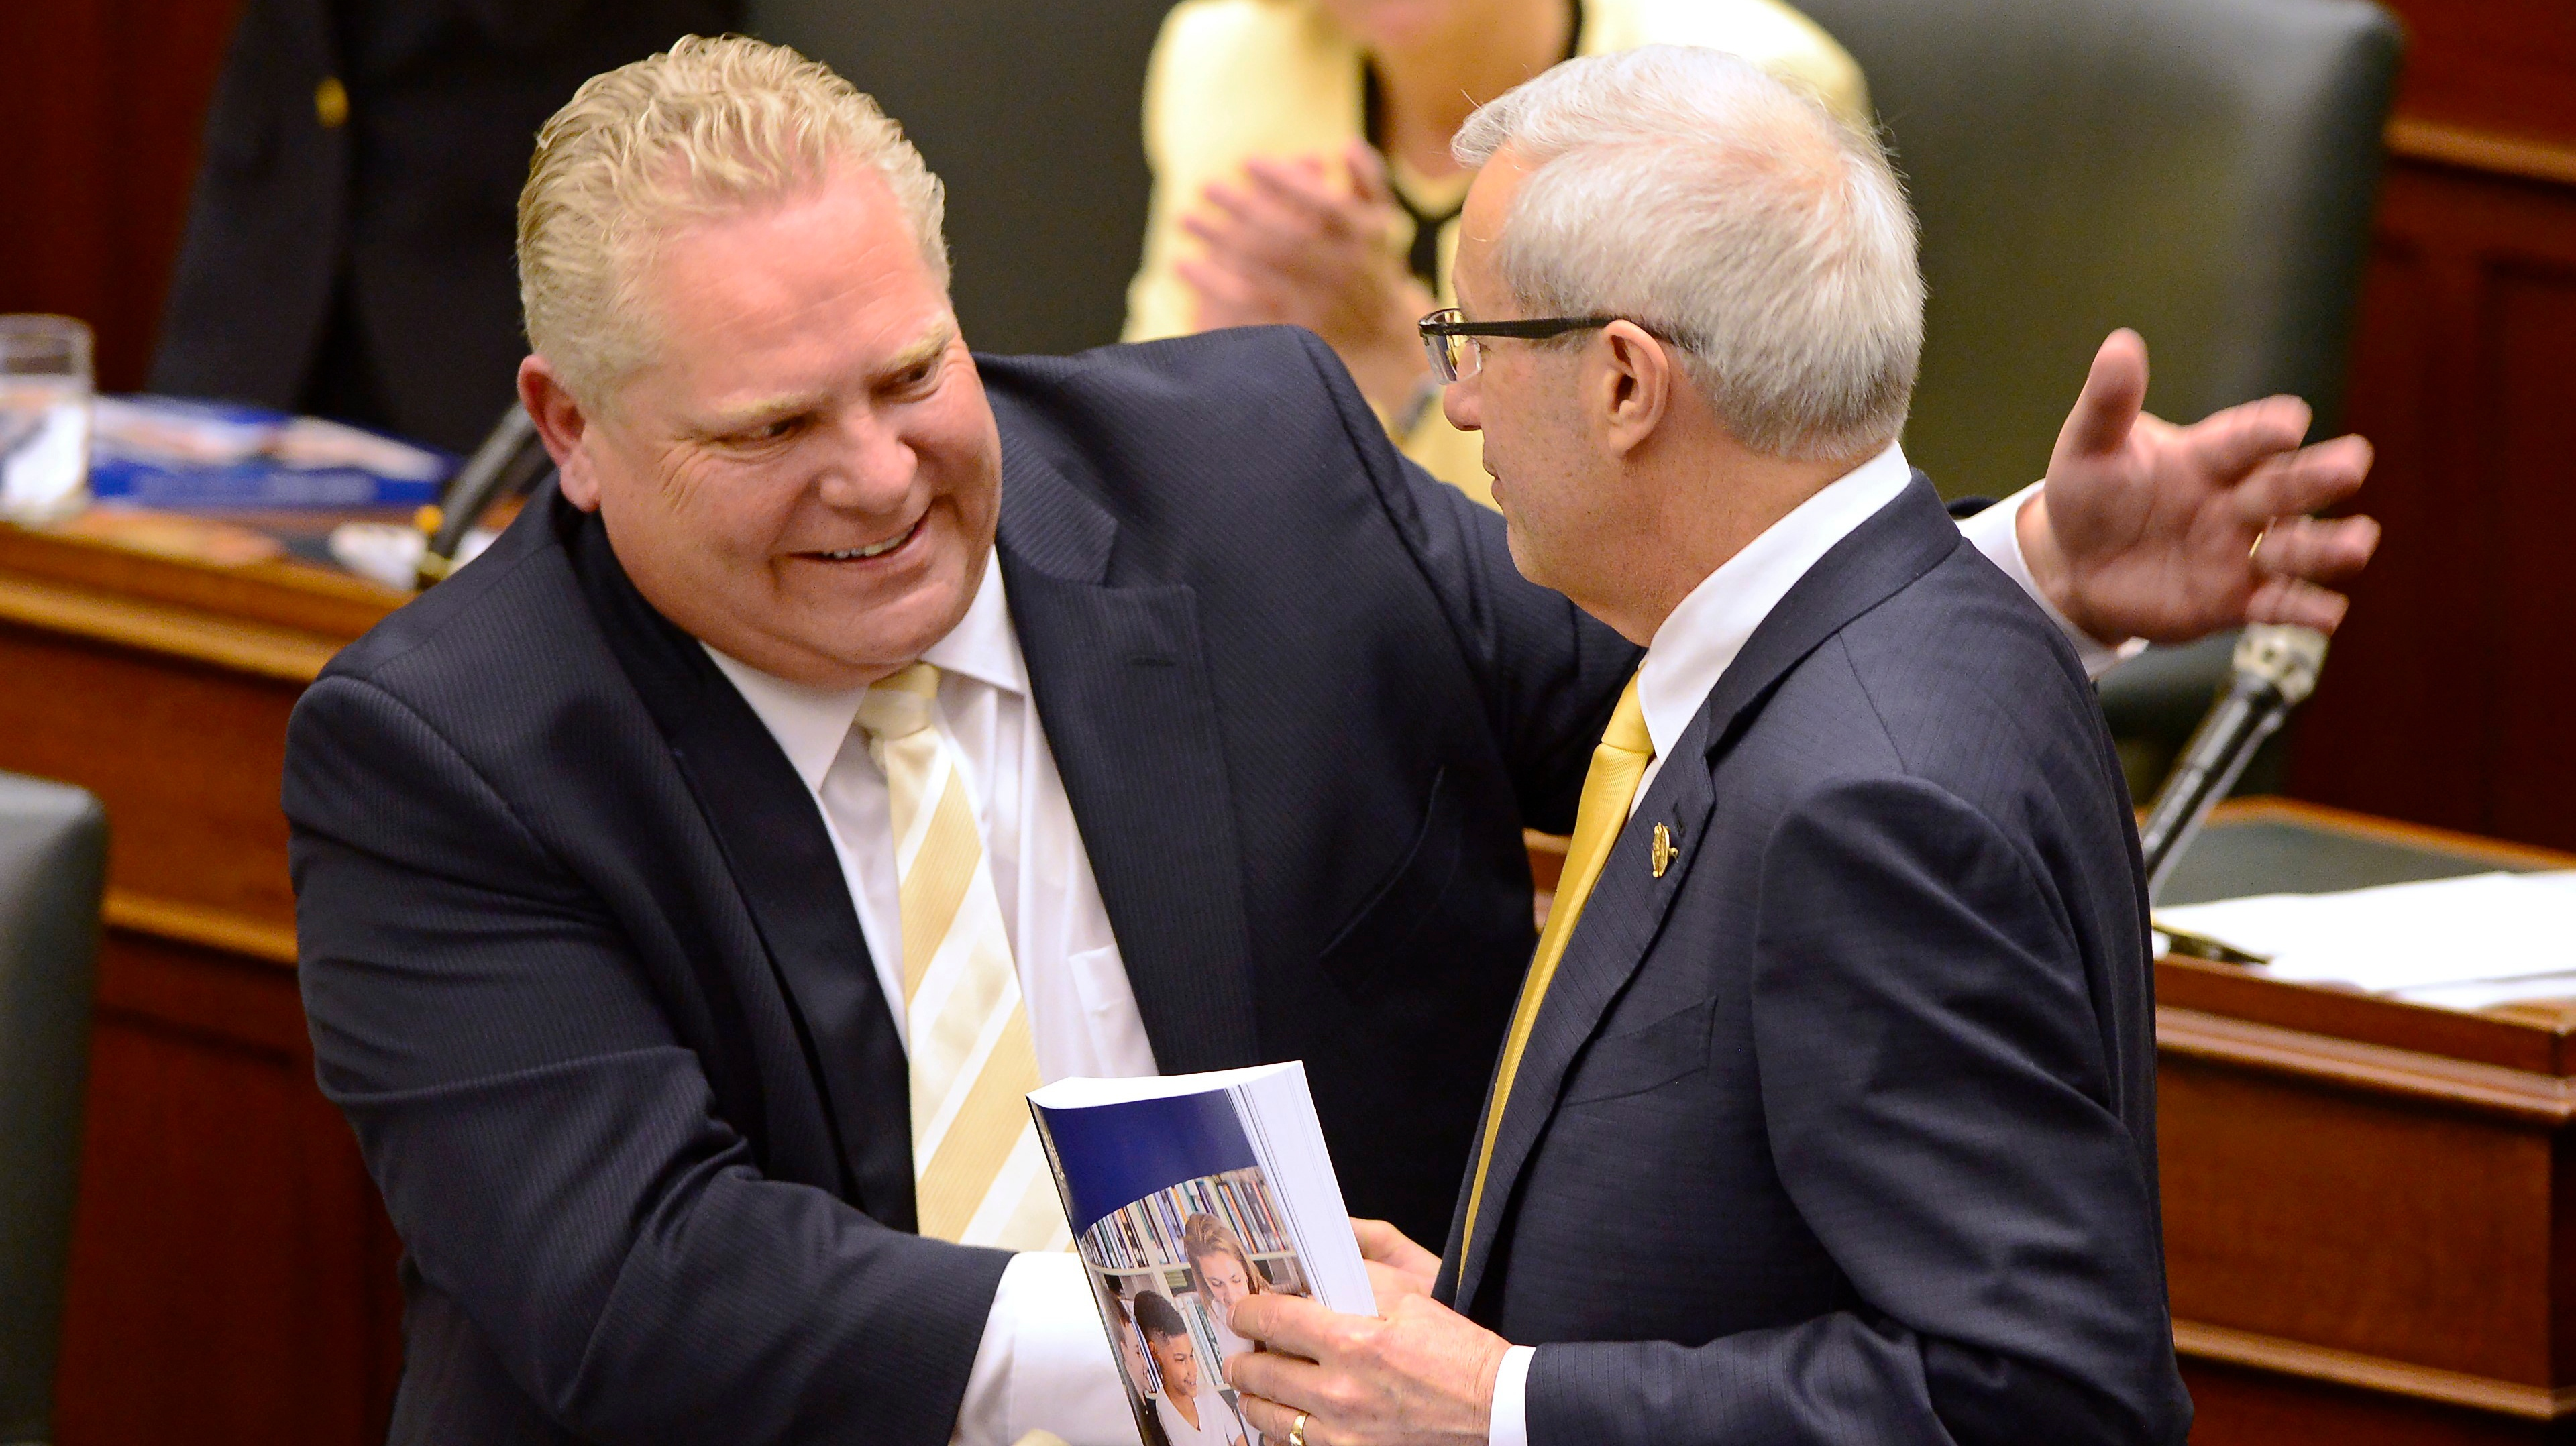 Ontario's Tories don't plan to balance books until after election